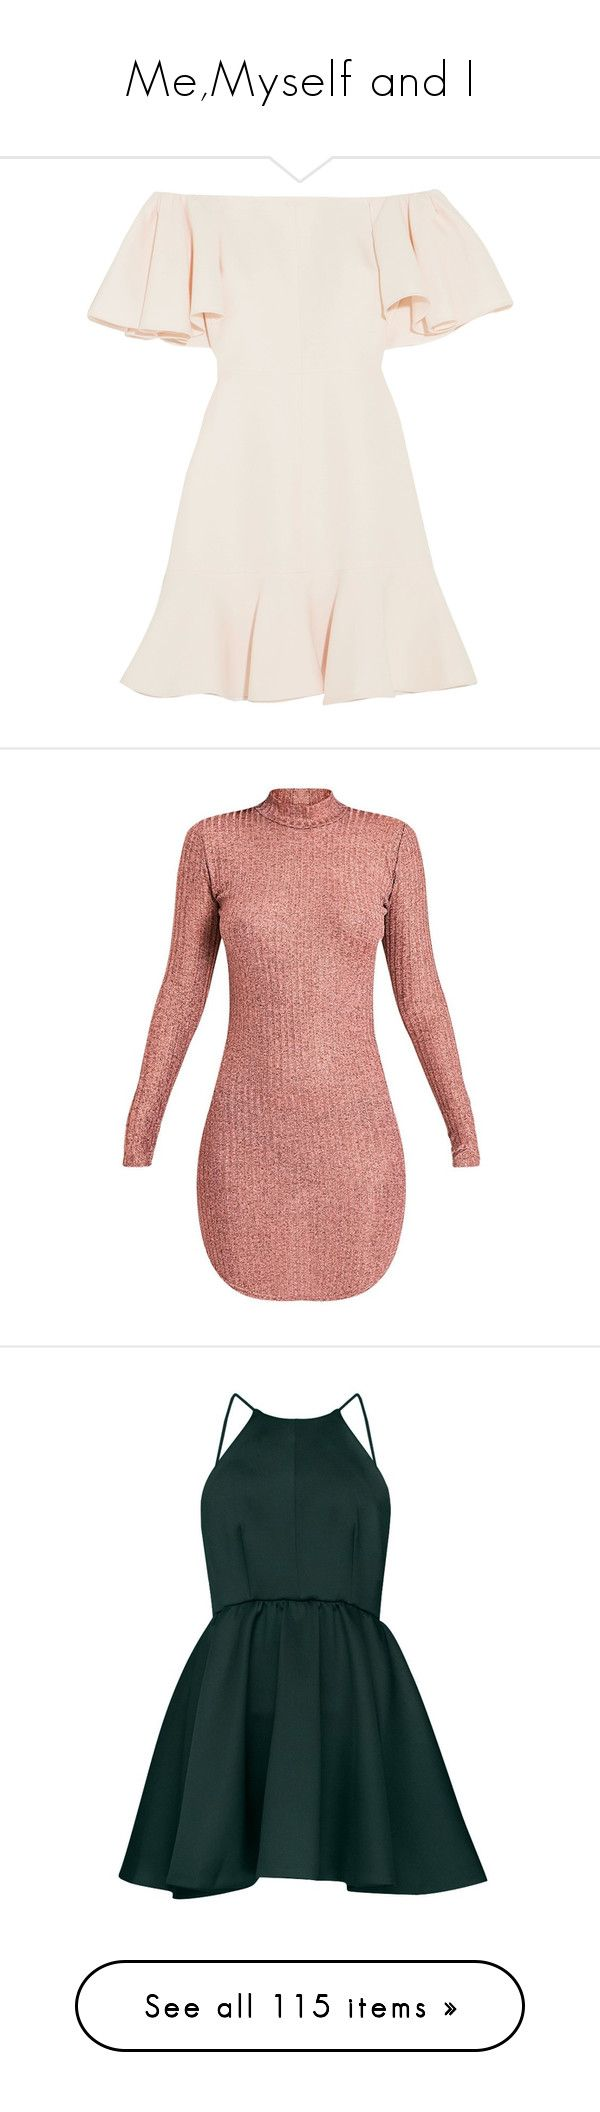 """""""Me,Myself and I"""" by bella-lovatic on Polyvore featuring dresses, vestidos, loose fitting dresses, flutter-sleeve dress, short dresses, pink mini dress, off the shoulder short dress, pink gold dress, high neck bodycon dress e body con dresses"""